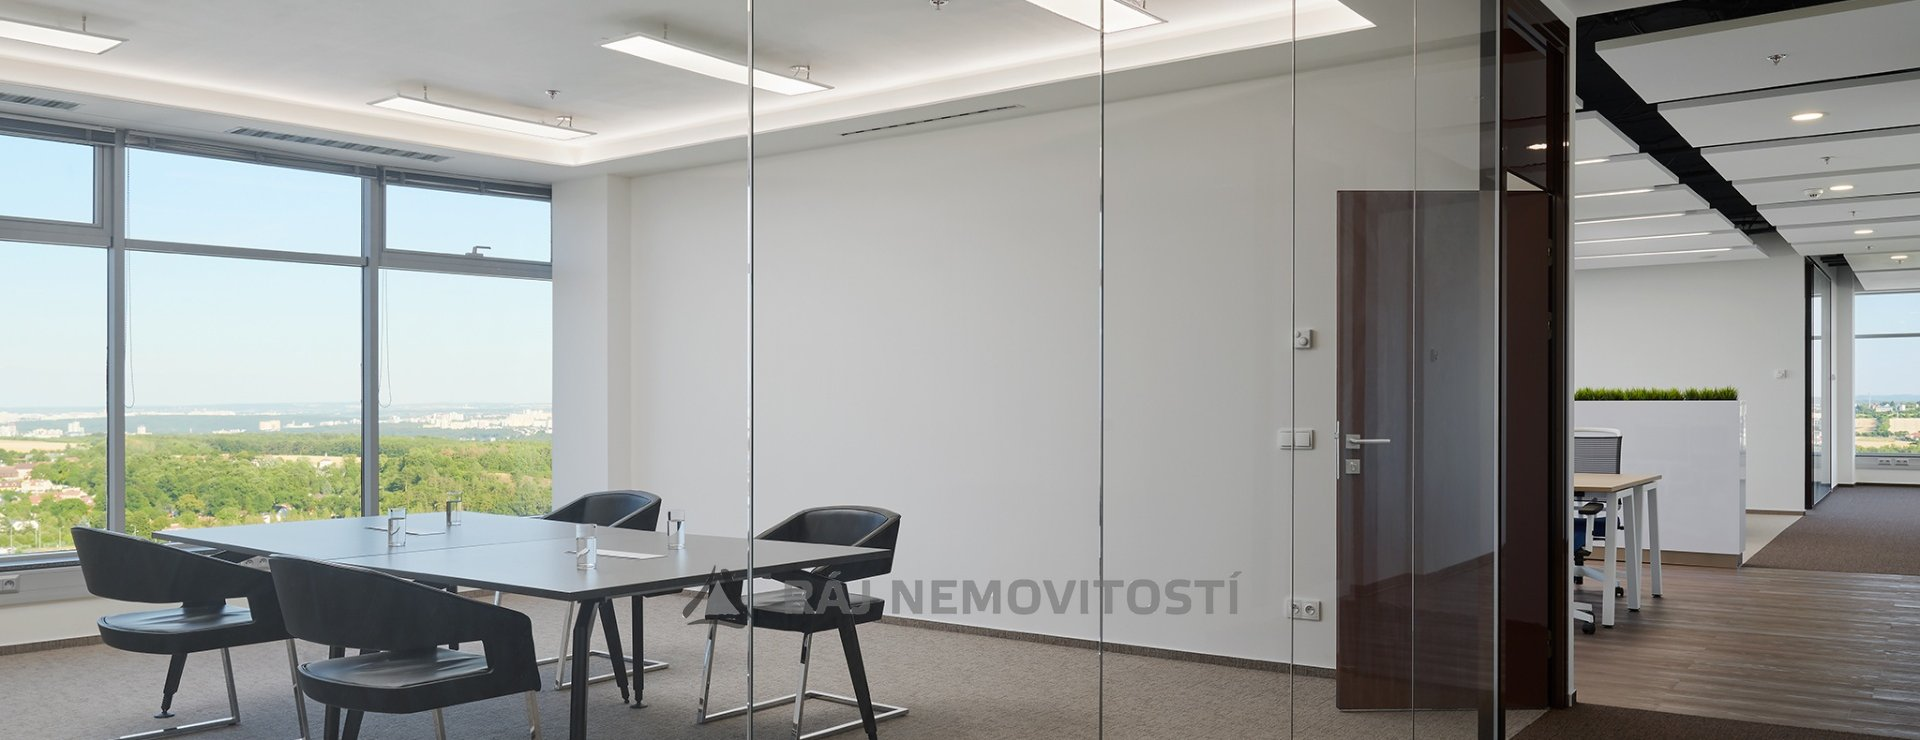 Show Suite_meeting room